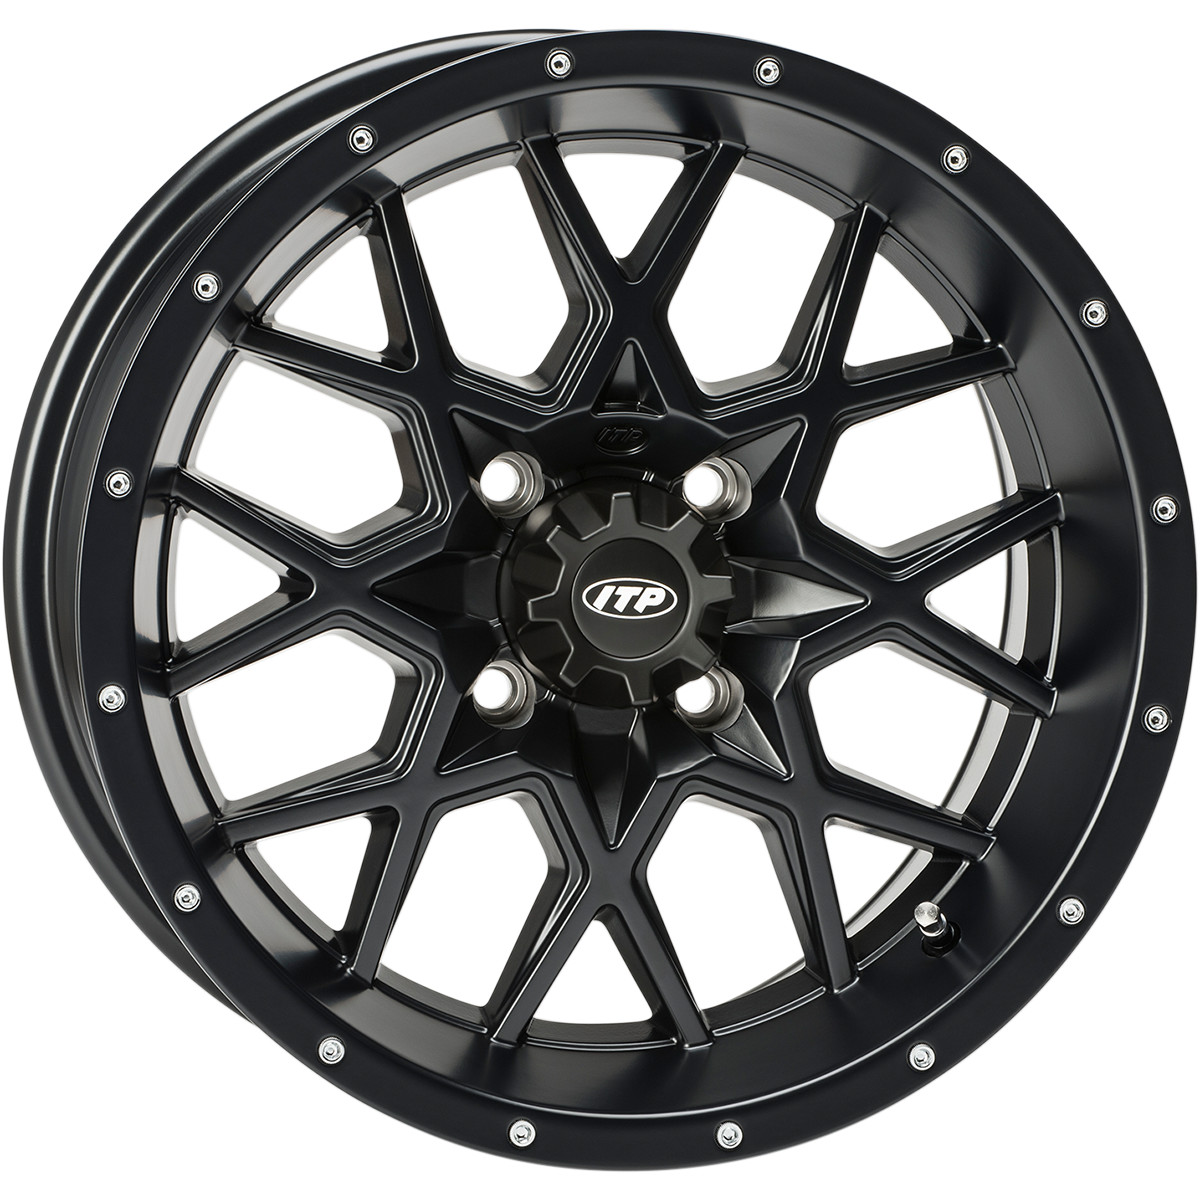 ITP 15x7 4x137 Hurricane Black vannesarja Can-Am